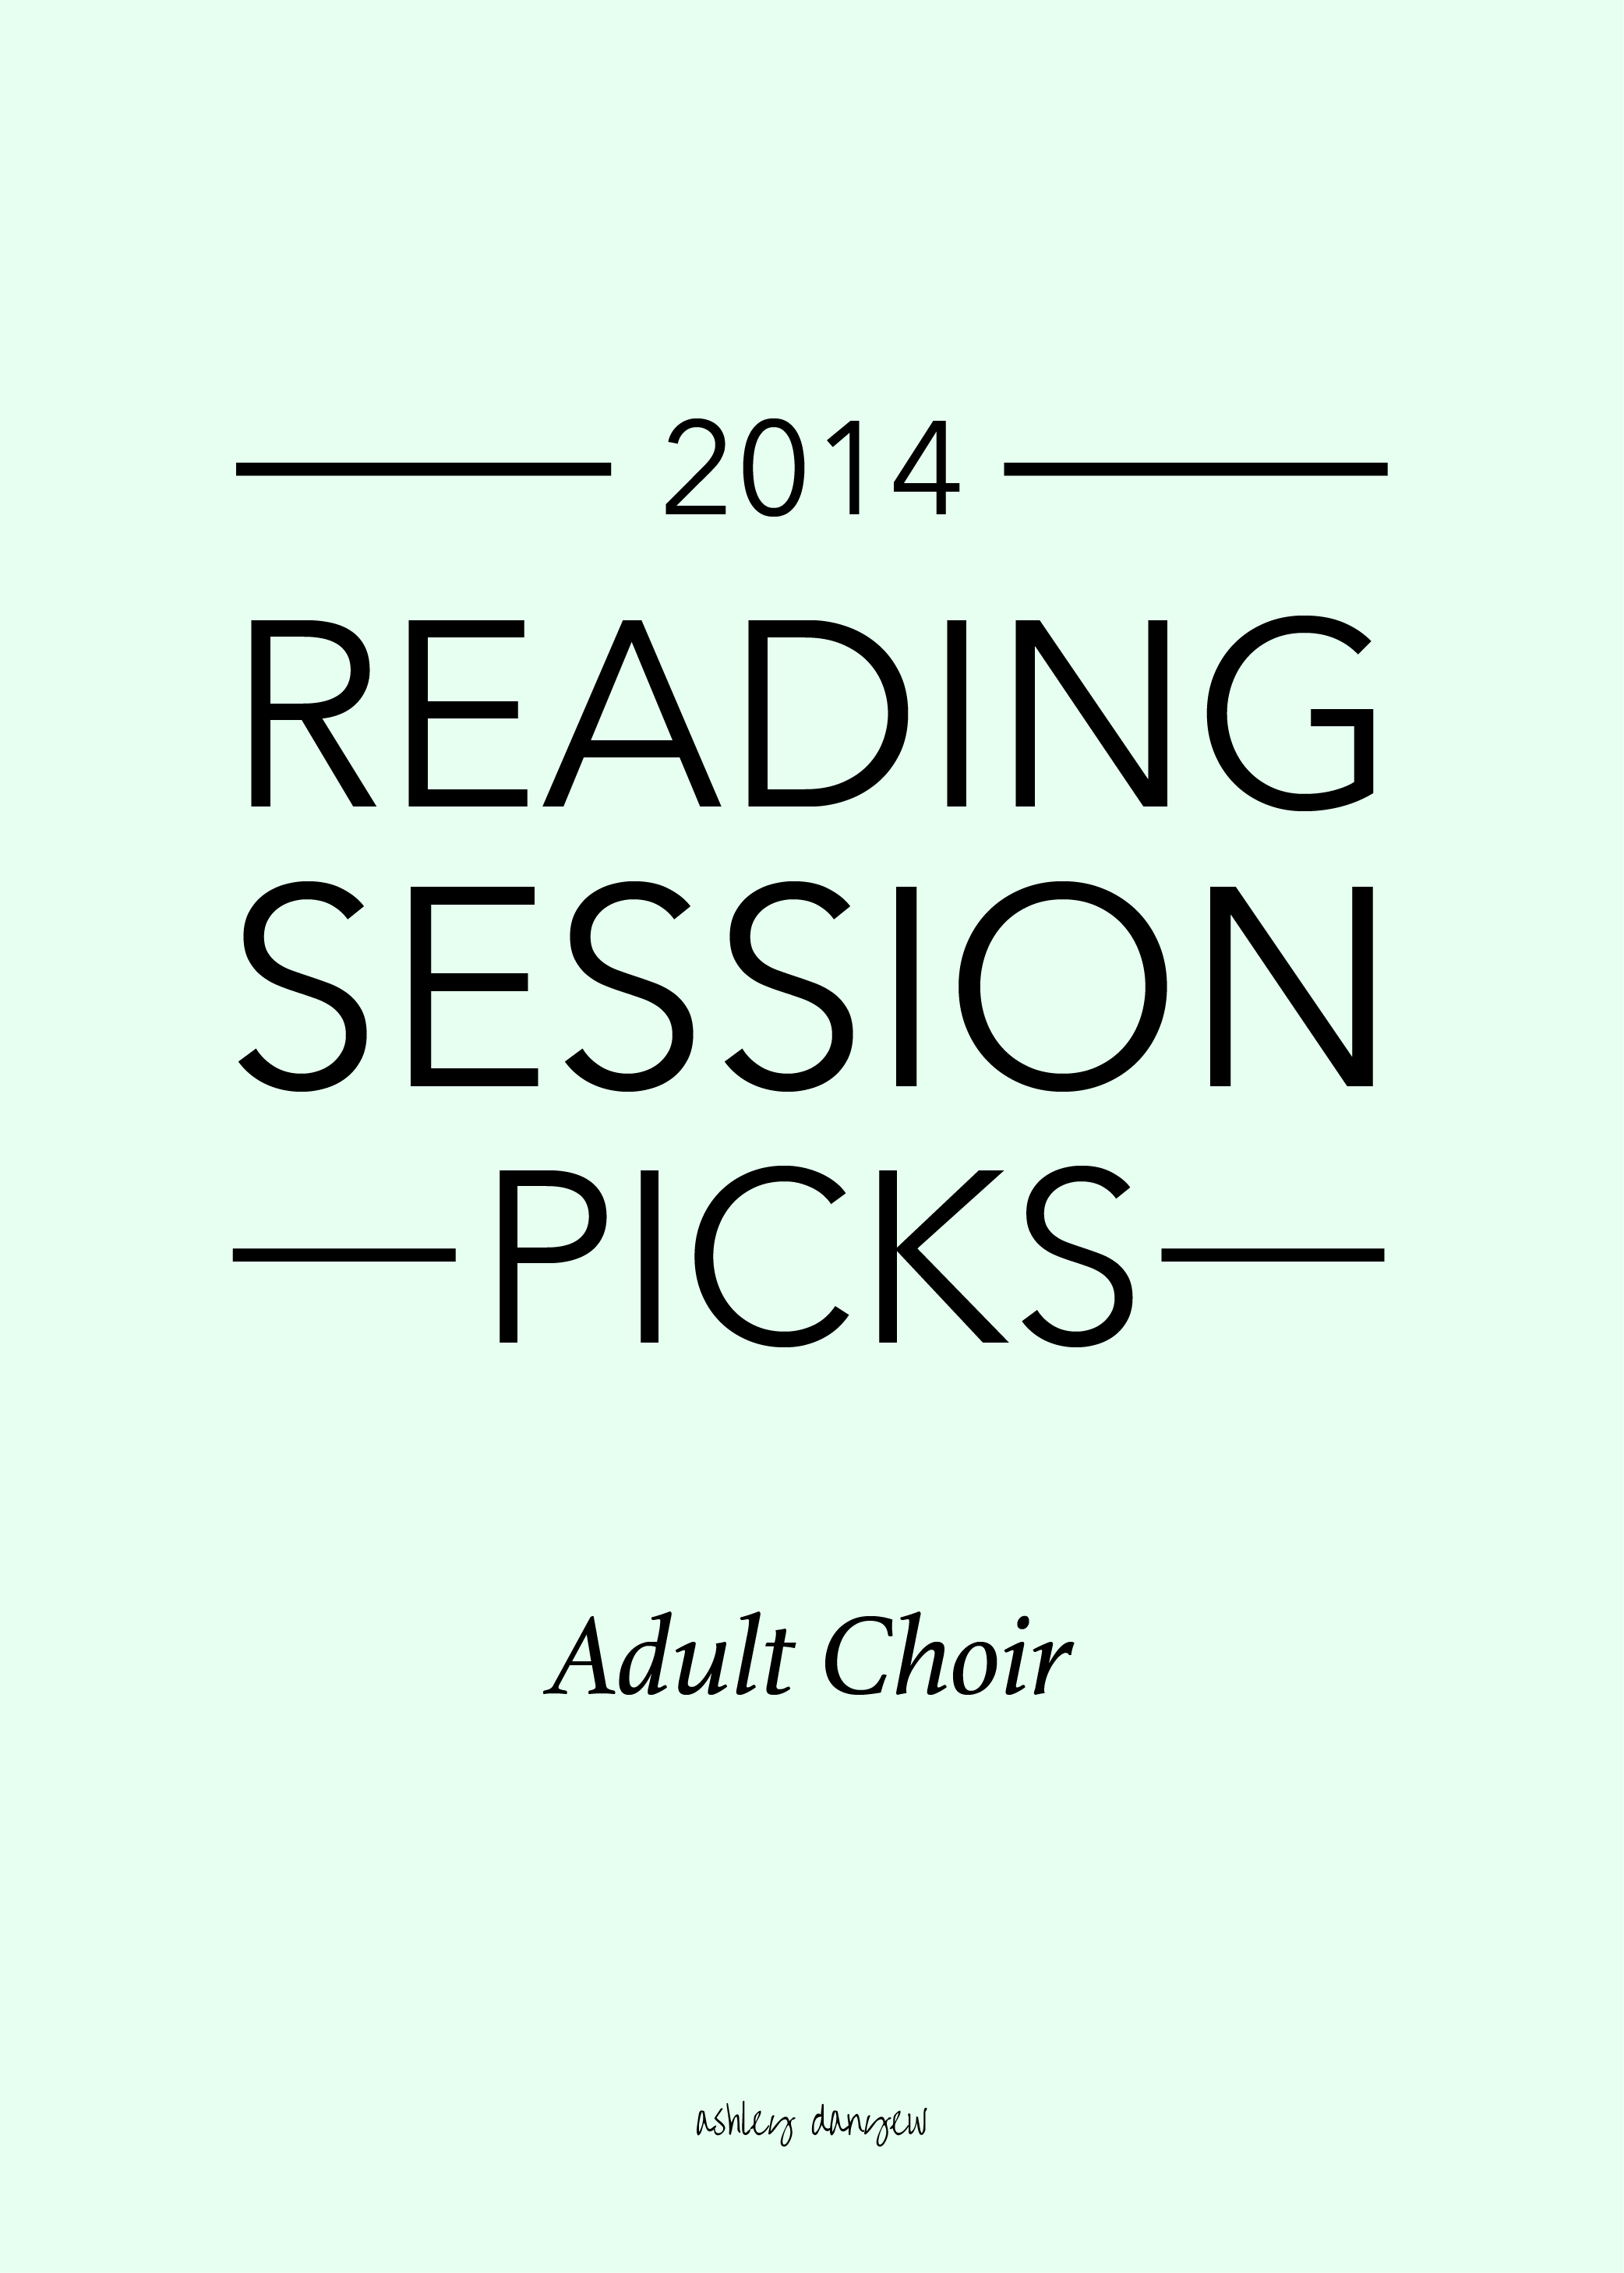 2014 Reading Session Picks - Adult Choir.png